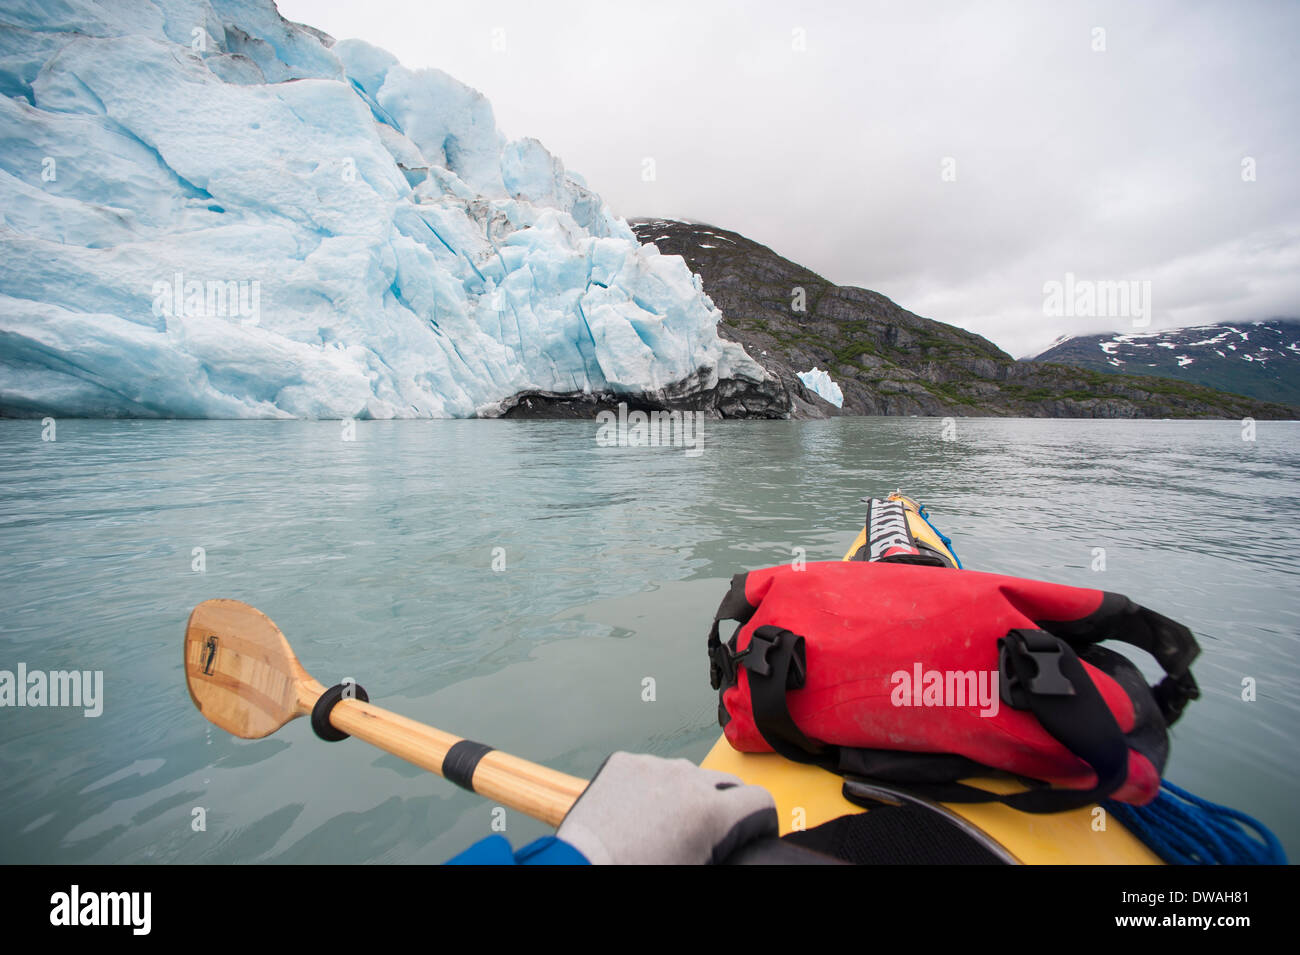 First person viewpoint photo of bow of sea kayak on Portage Lake, near Portage Glacier, Southcentral, Alaska - Stock Image